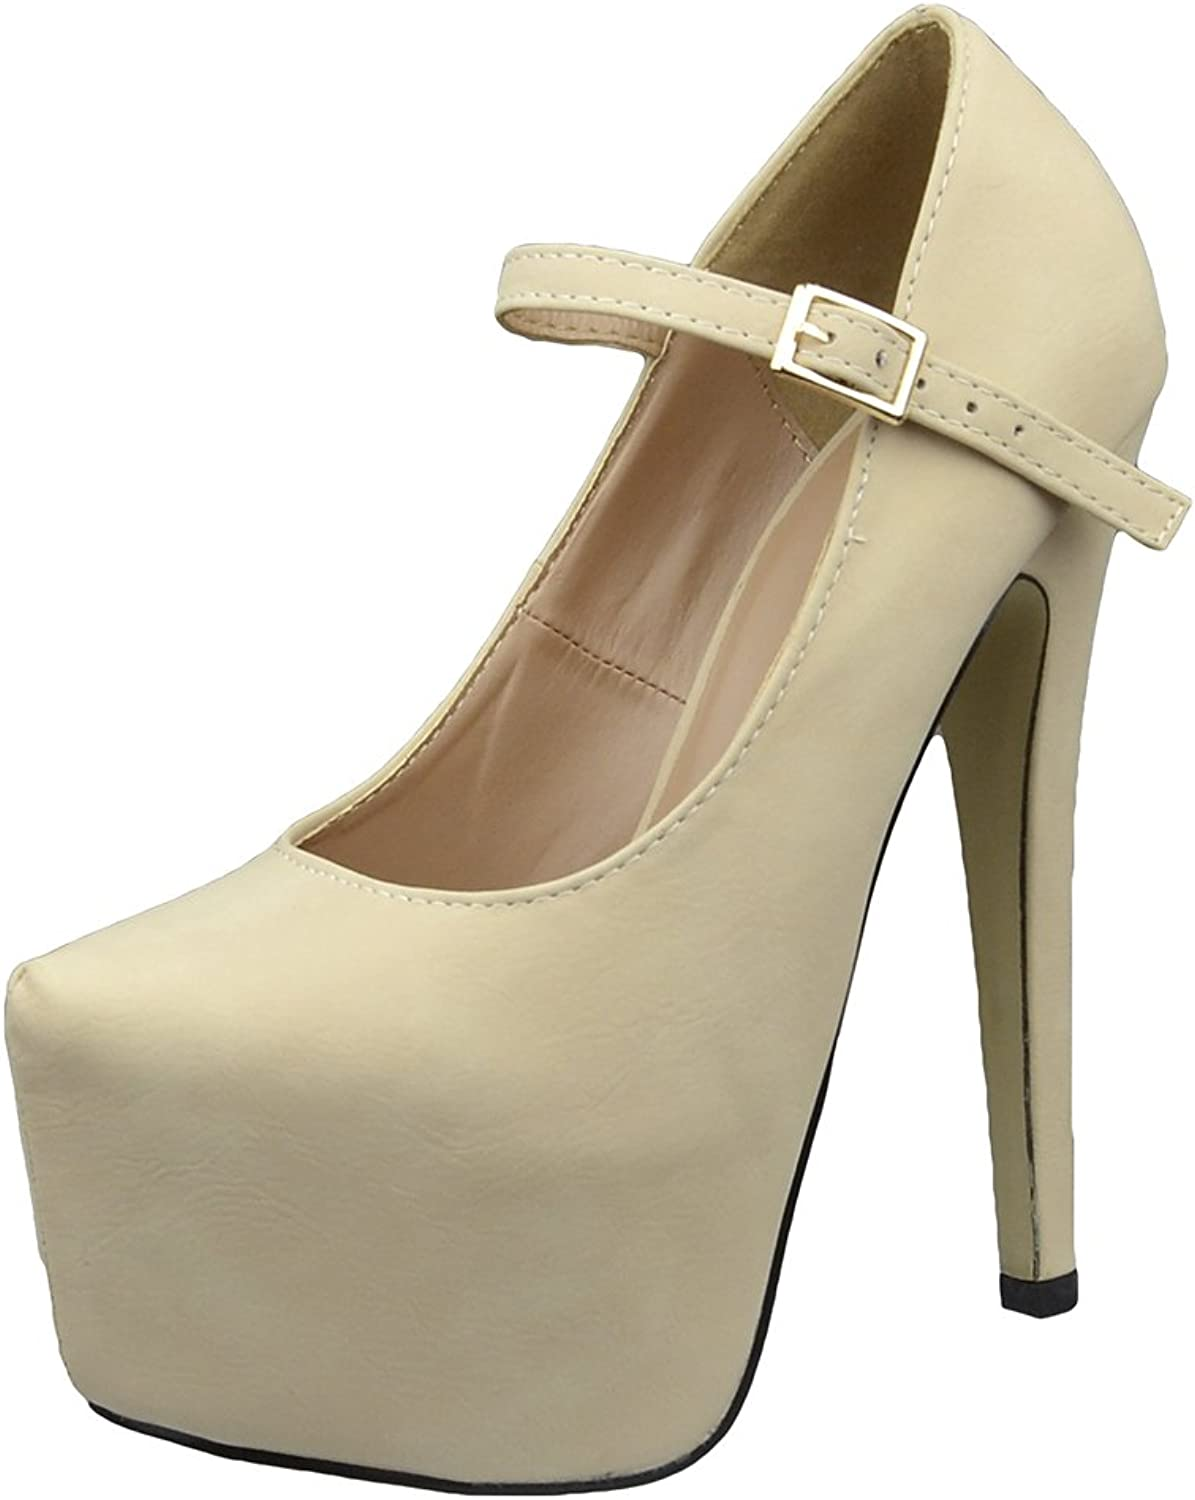 DS By KSC Womens Platform shoes Ankle Strap Closed Toe Stiletto Pumps Nude